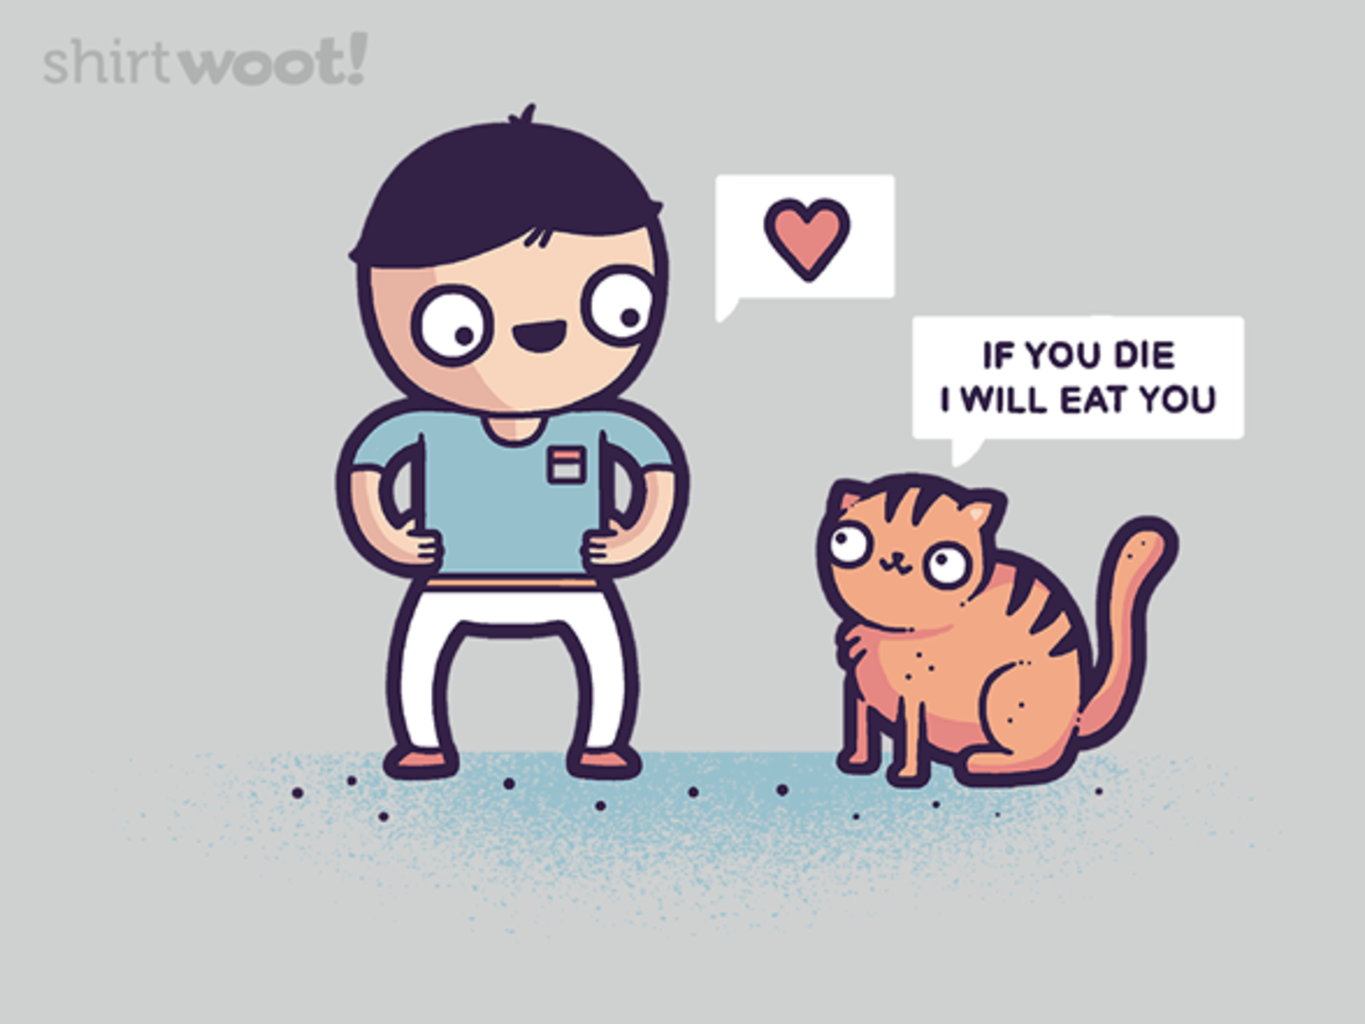 Woot!: If You Die